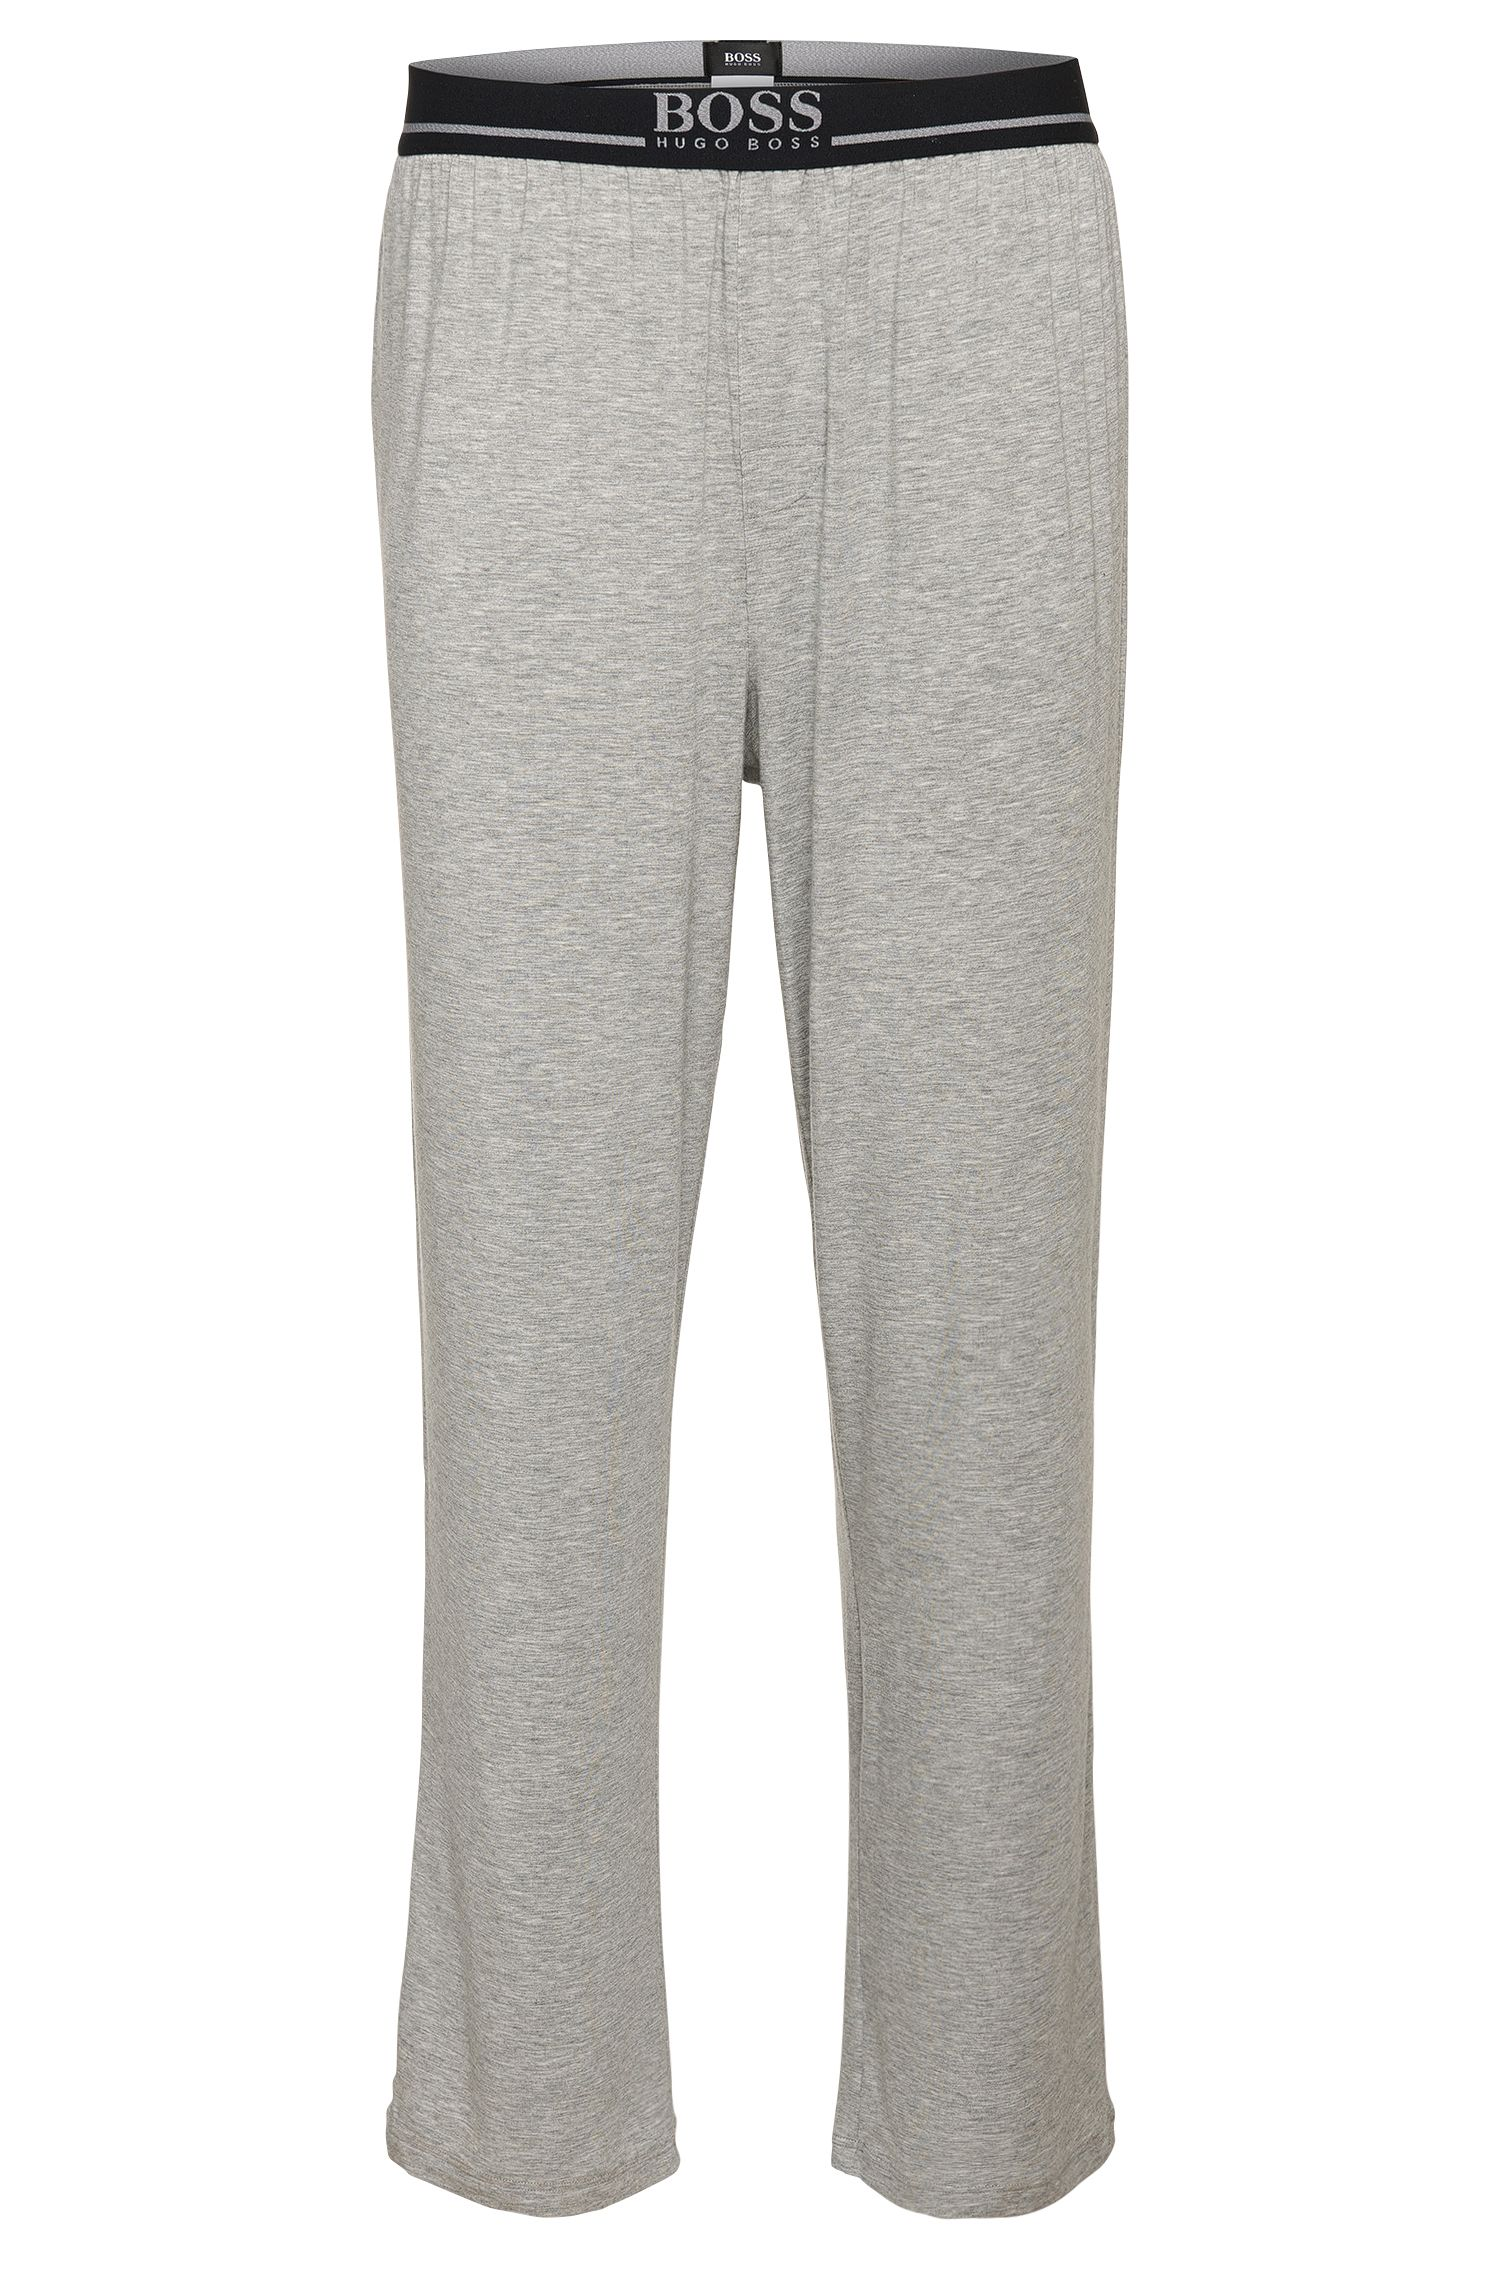 'Long Pant EW' | Stretch Modal Lounge Pants